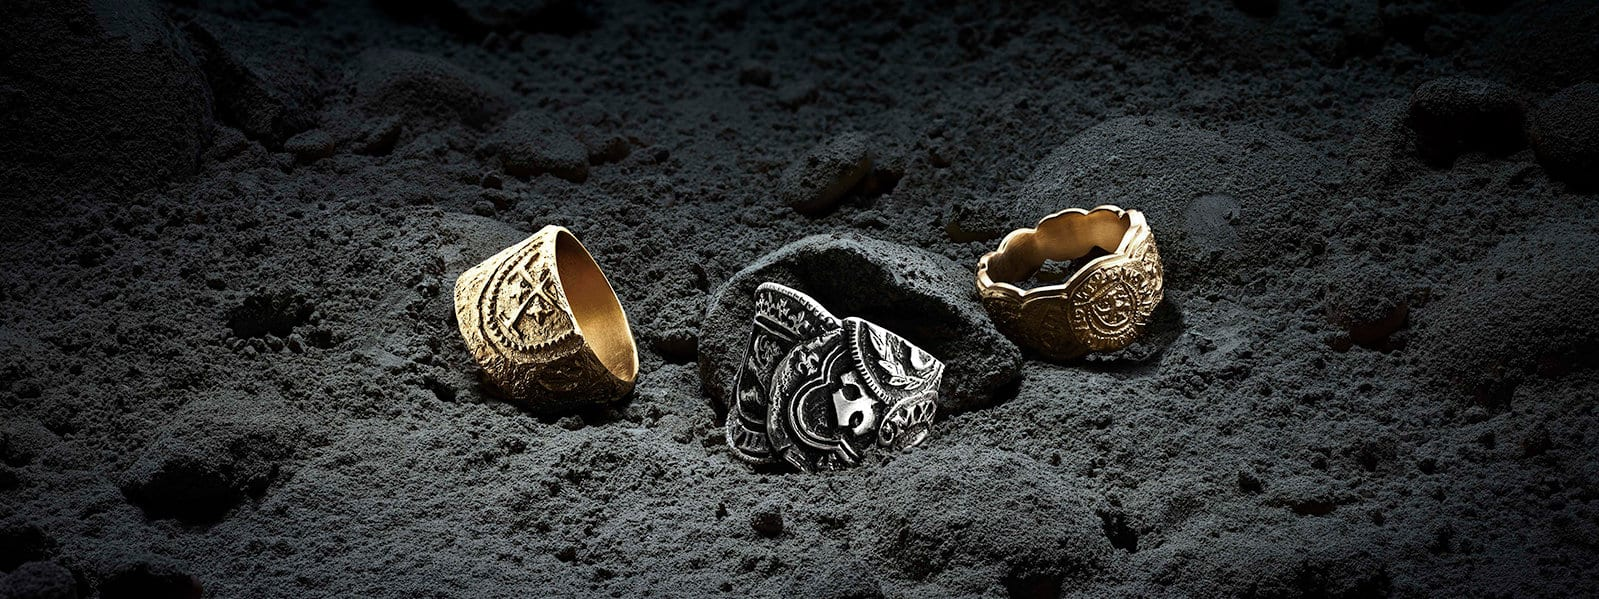 11eb32931d97fb Shipwreck bands in 18K yellow gold or sterling silver on the seafloor.